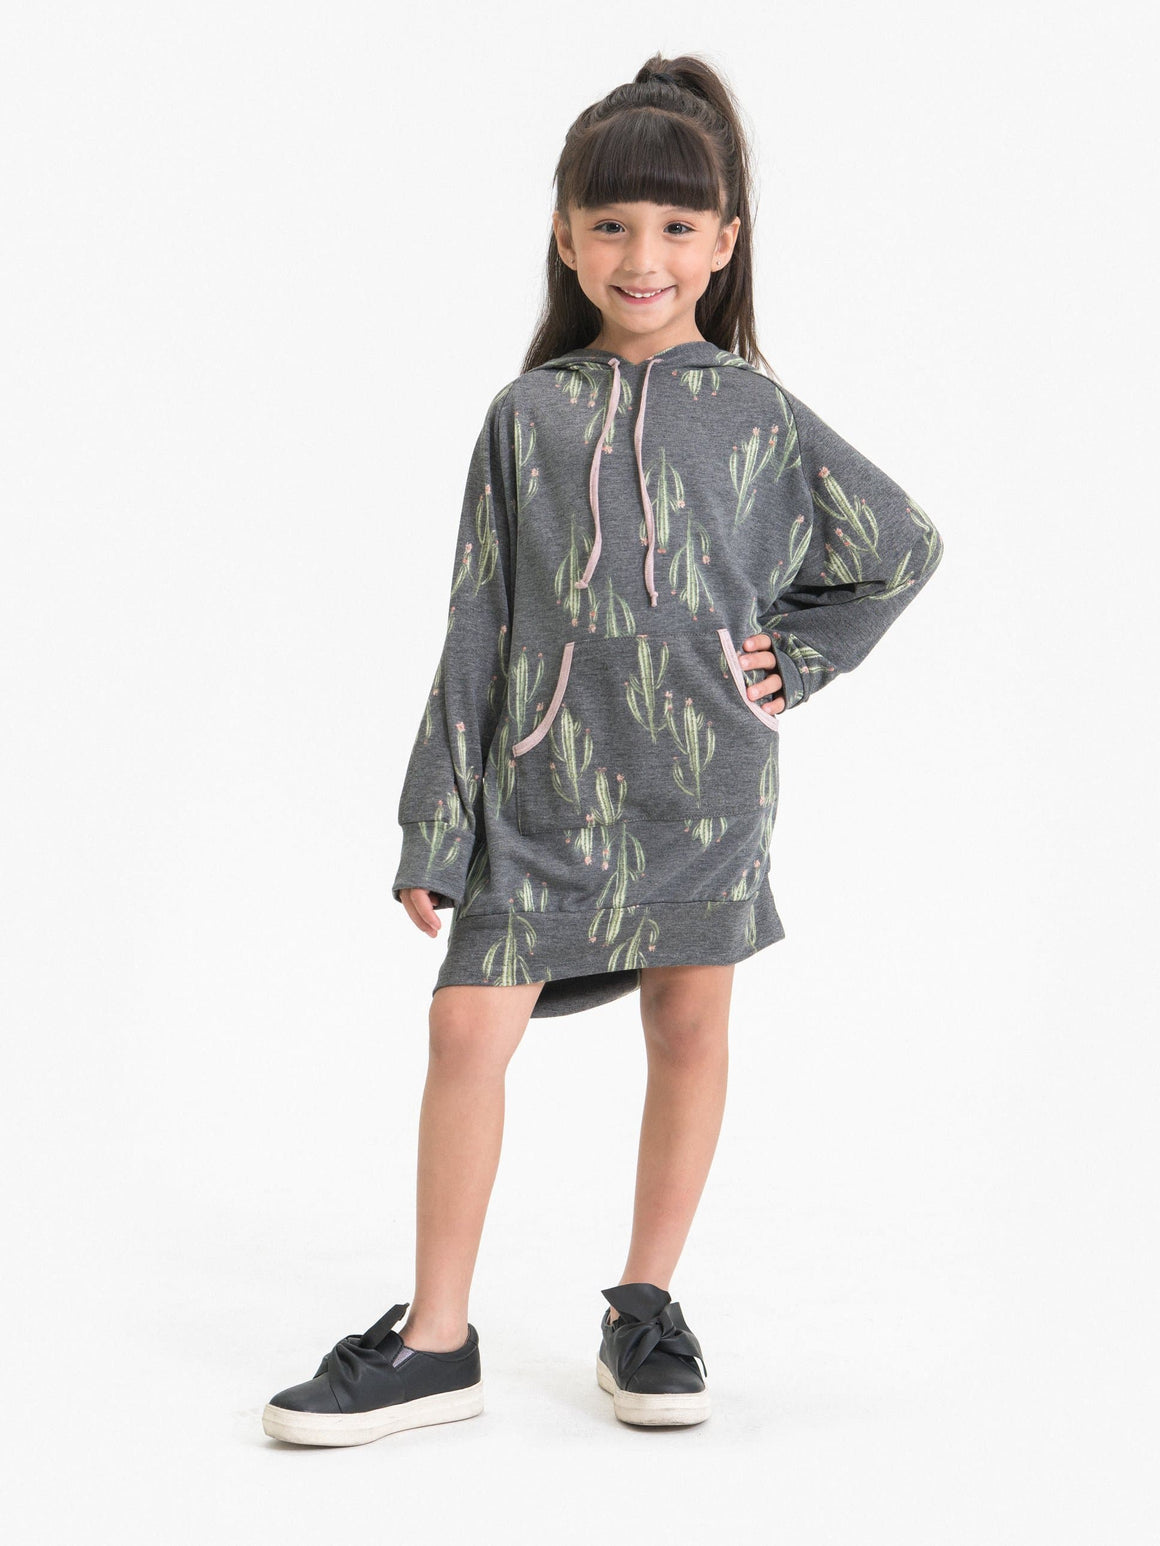 Cactus Dreams Hoodie Dress